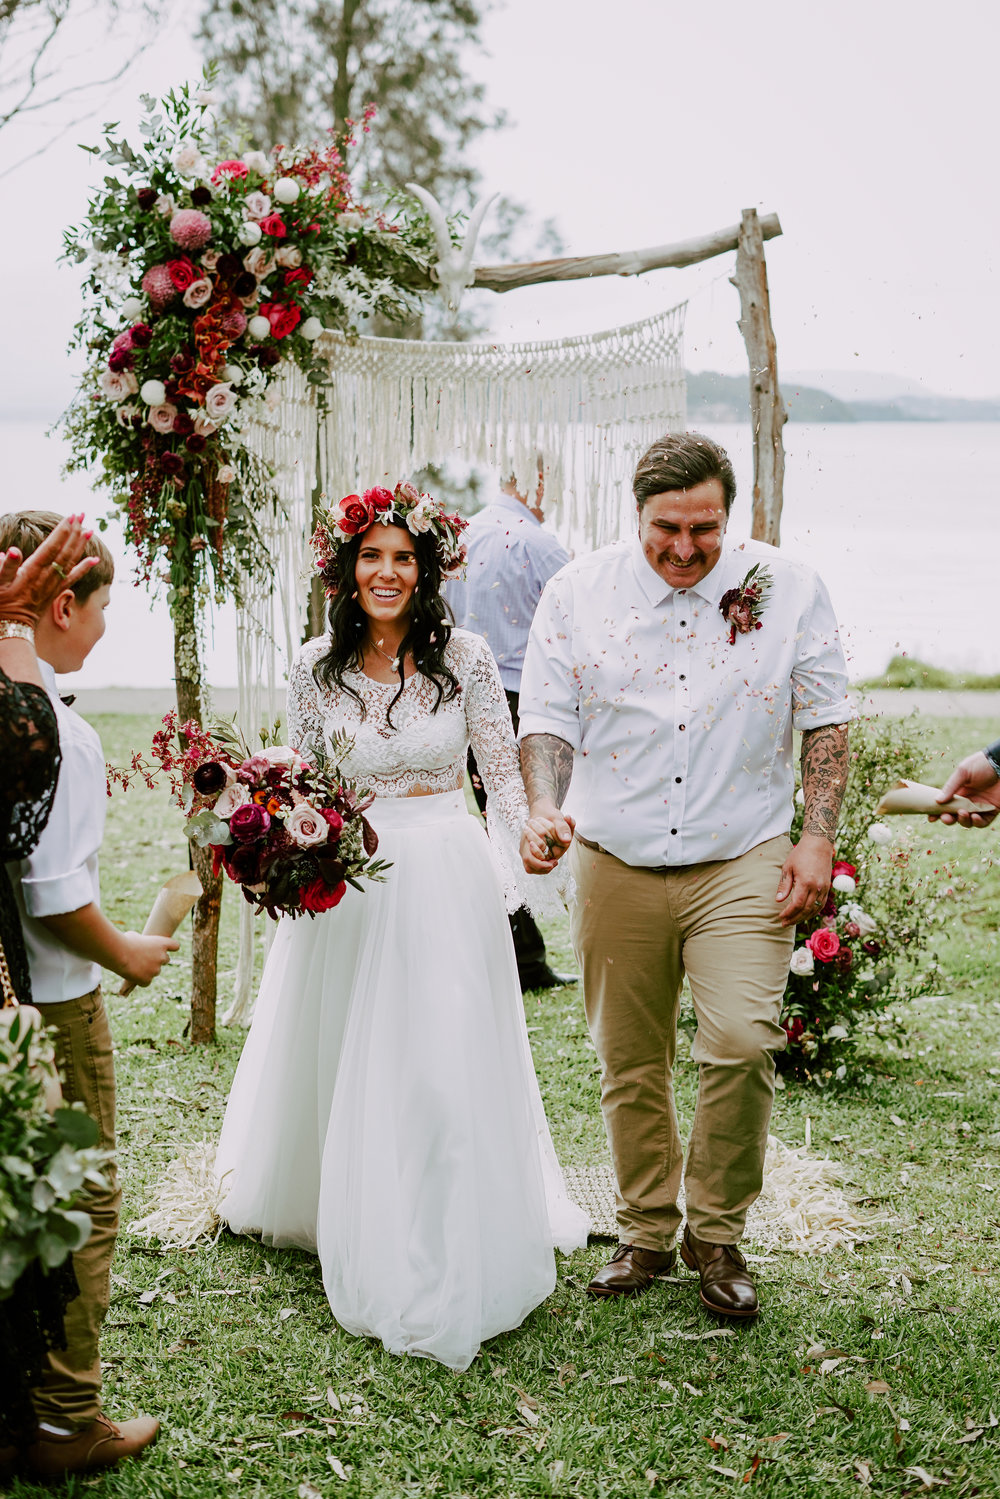 Real Weddings - See the photos and read the stories of the couples we have worked with to create a day special and unique to them.These real weddings give you a chance to see some beautiful local venues styled by Everlong.We love our clients!